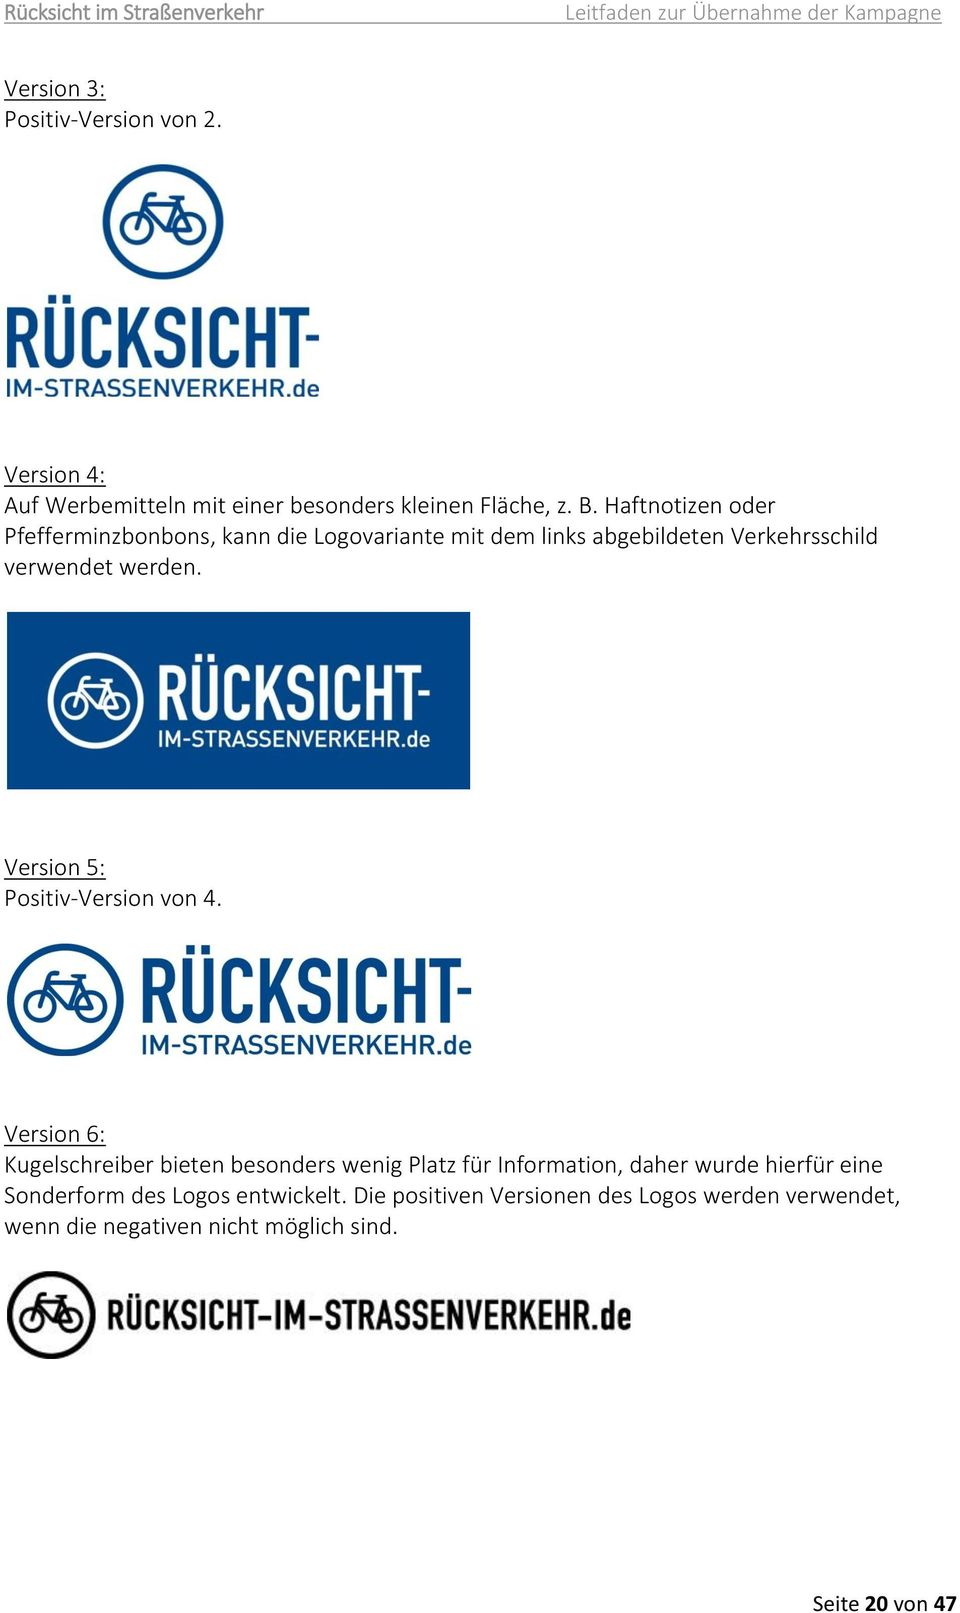 Version 5: Positiv-Version von 4.